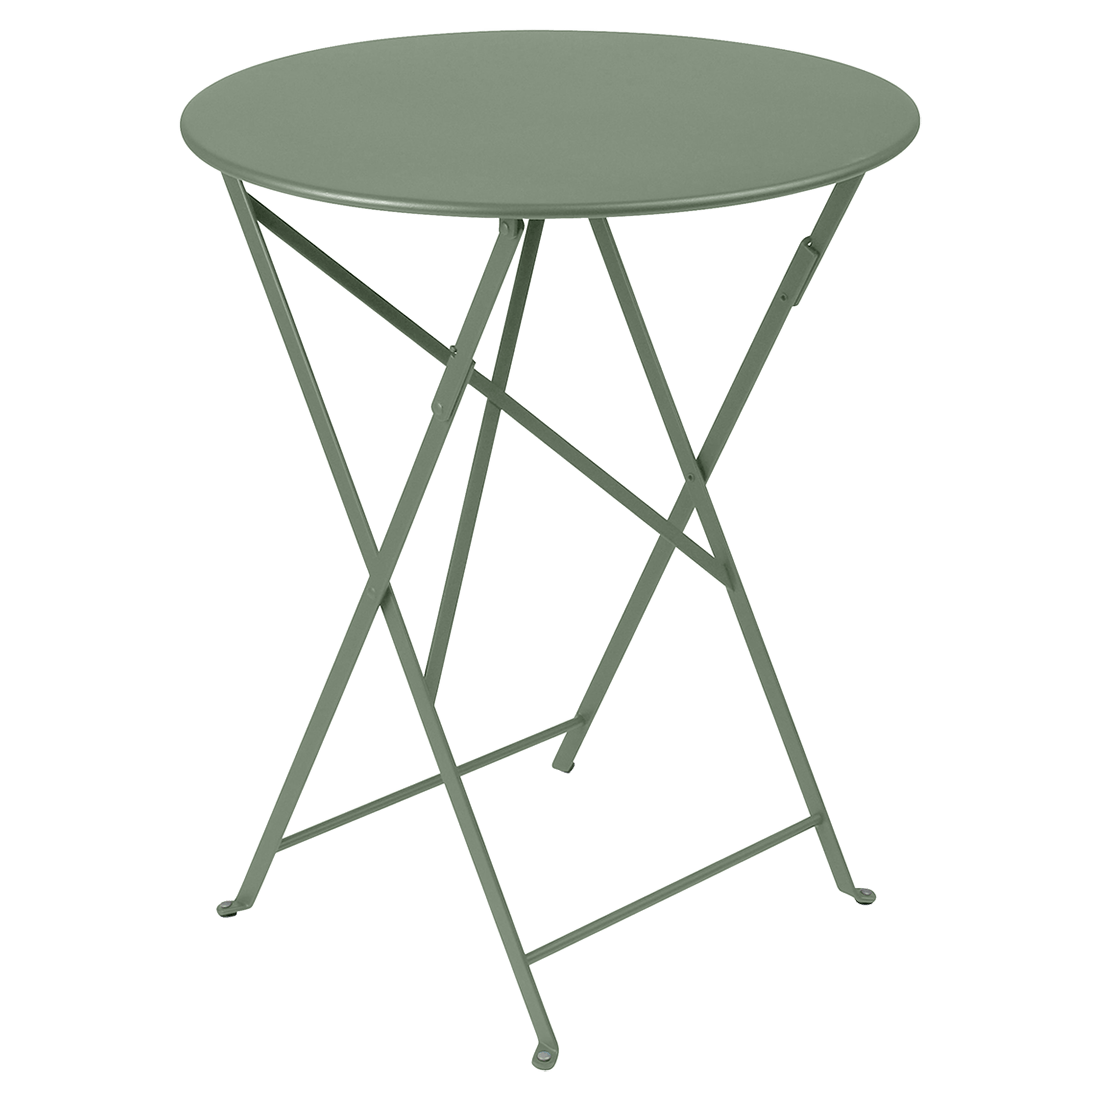 Bistro Folding Table - Cactus Table Fermob